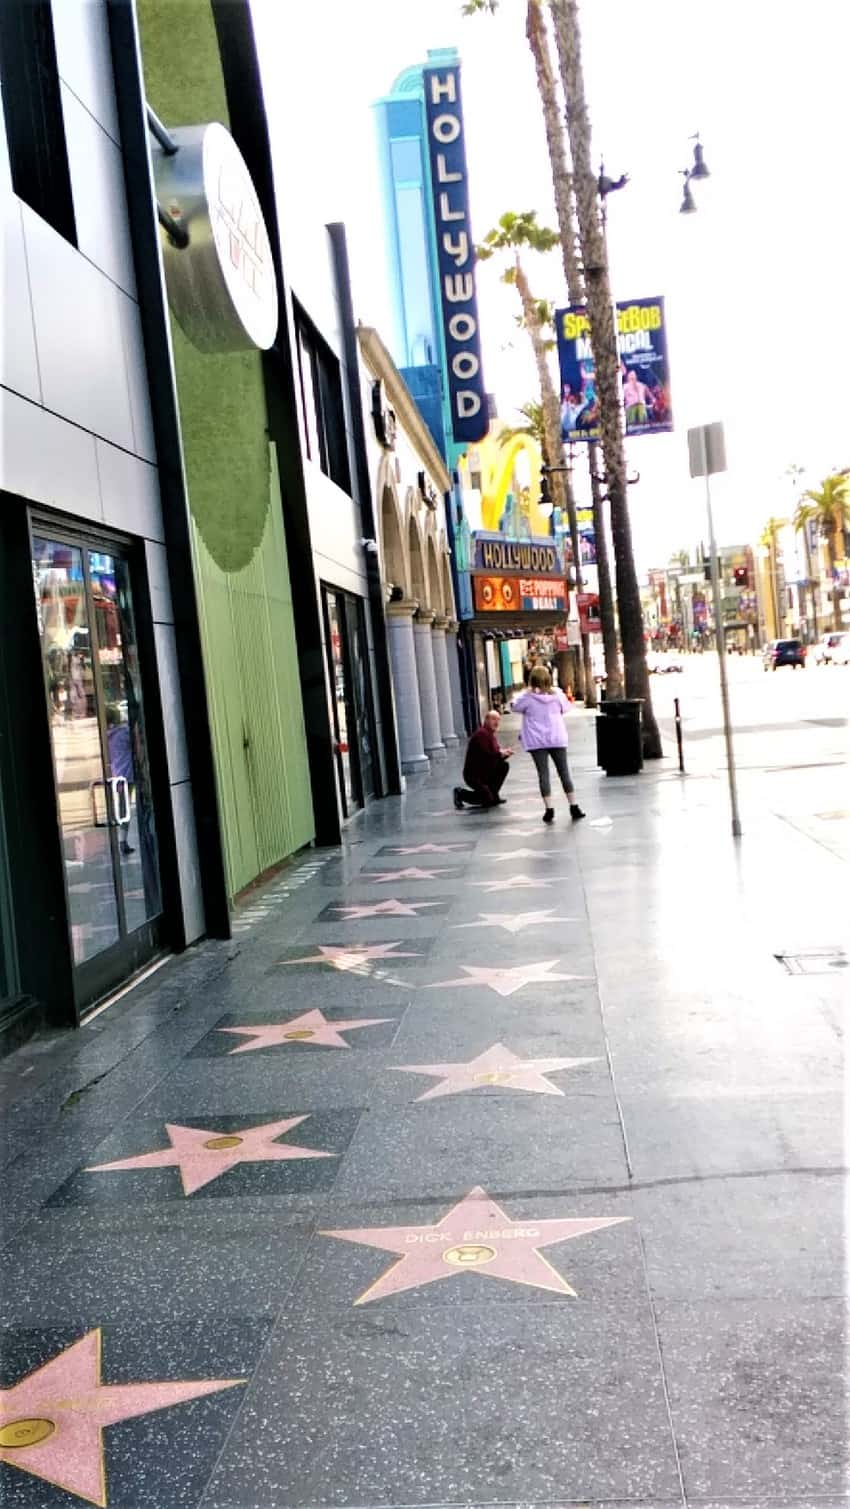 Only a couple other people were out on the Walk of Fame in Hollywood